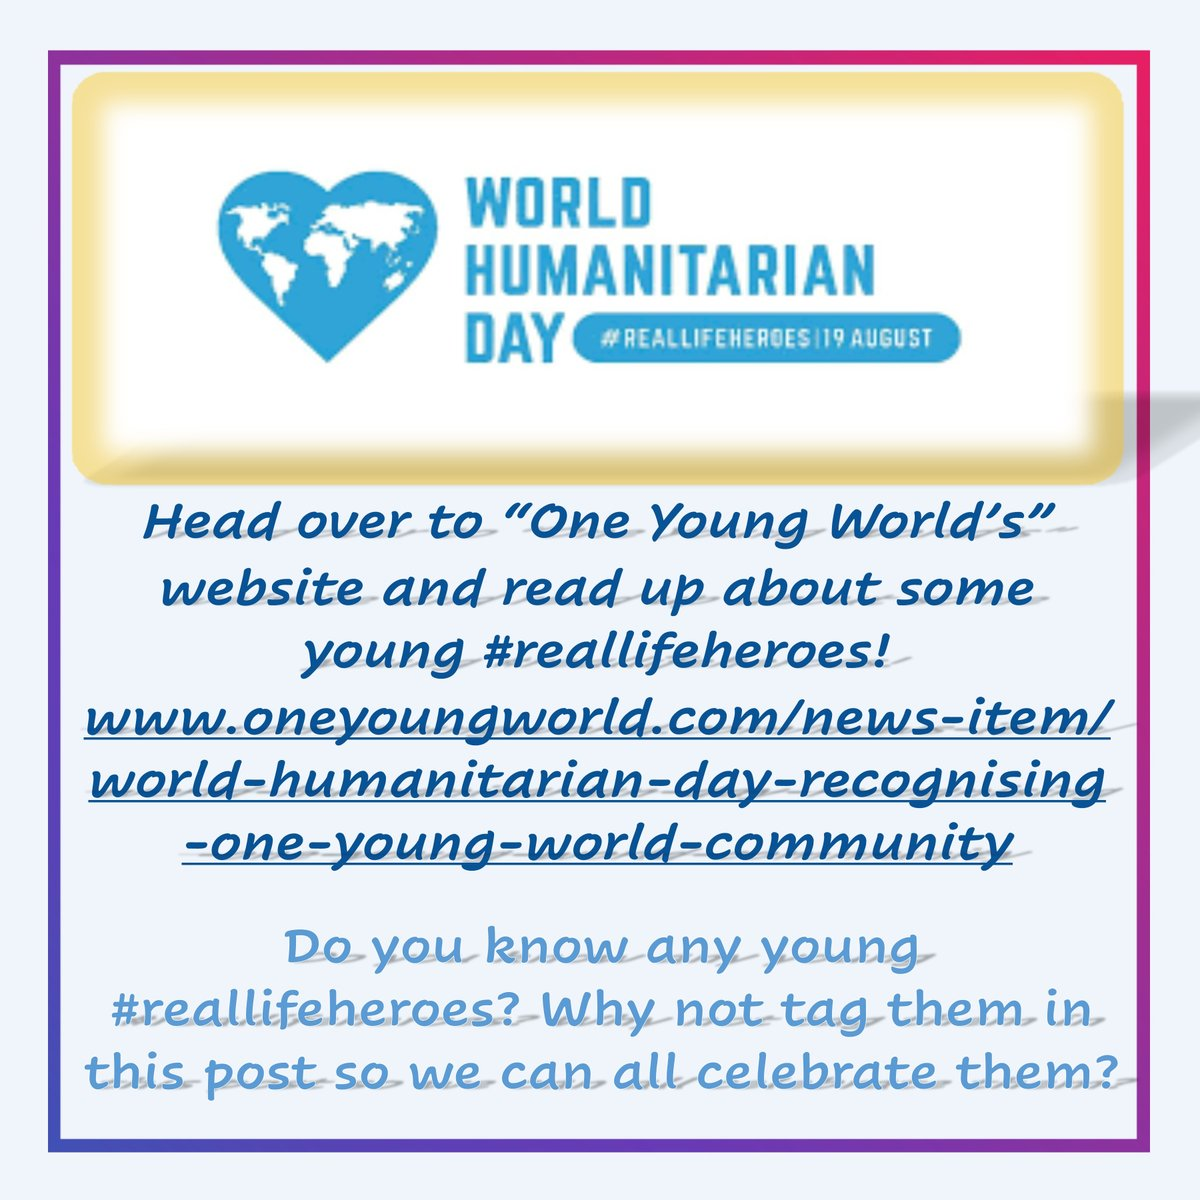 It's World Humanitarian Day!!!!   This year's theme is #reallifehero  Tag a young #reallifehero so we can all celebrate them!    #sharehumanity #theworldneedsmore #whd #whd2020 #WorldHumanitarianDay #apartbuttogether #sthelenstogether